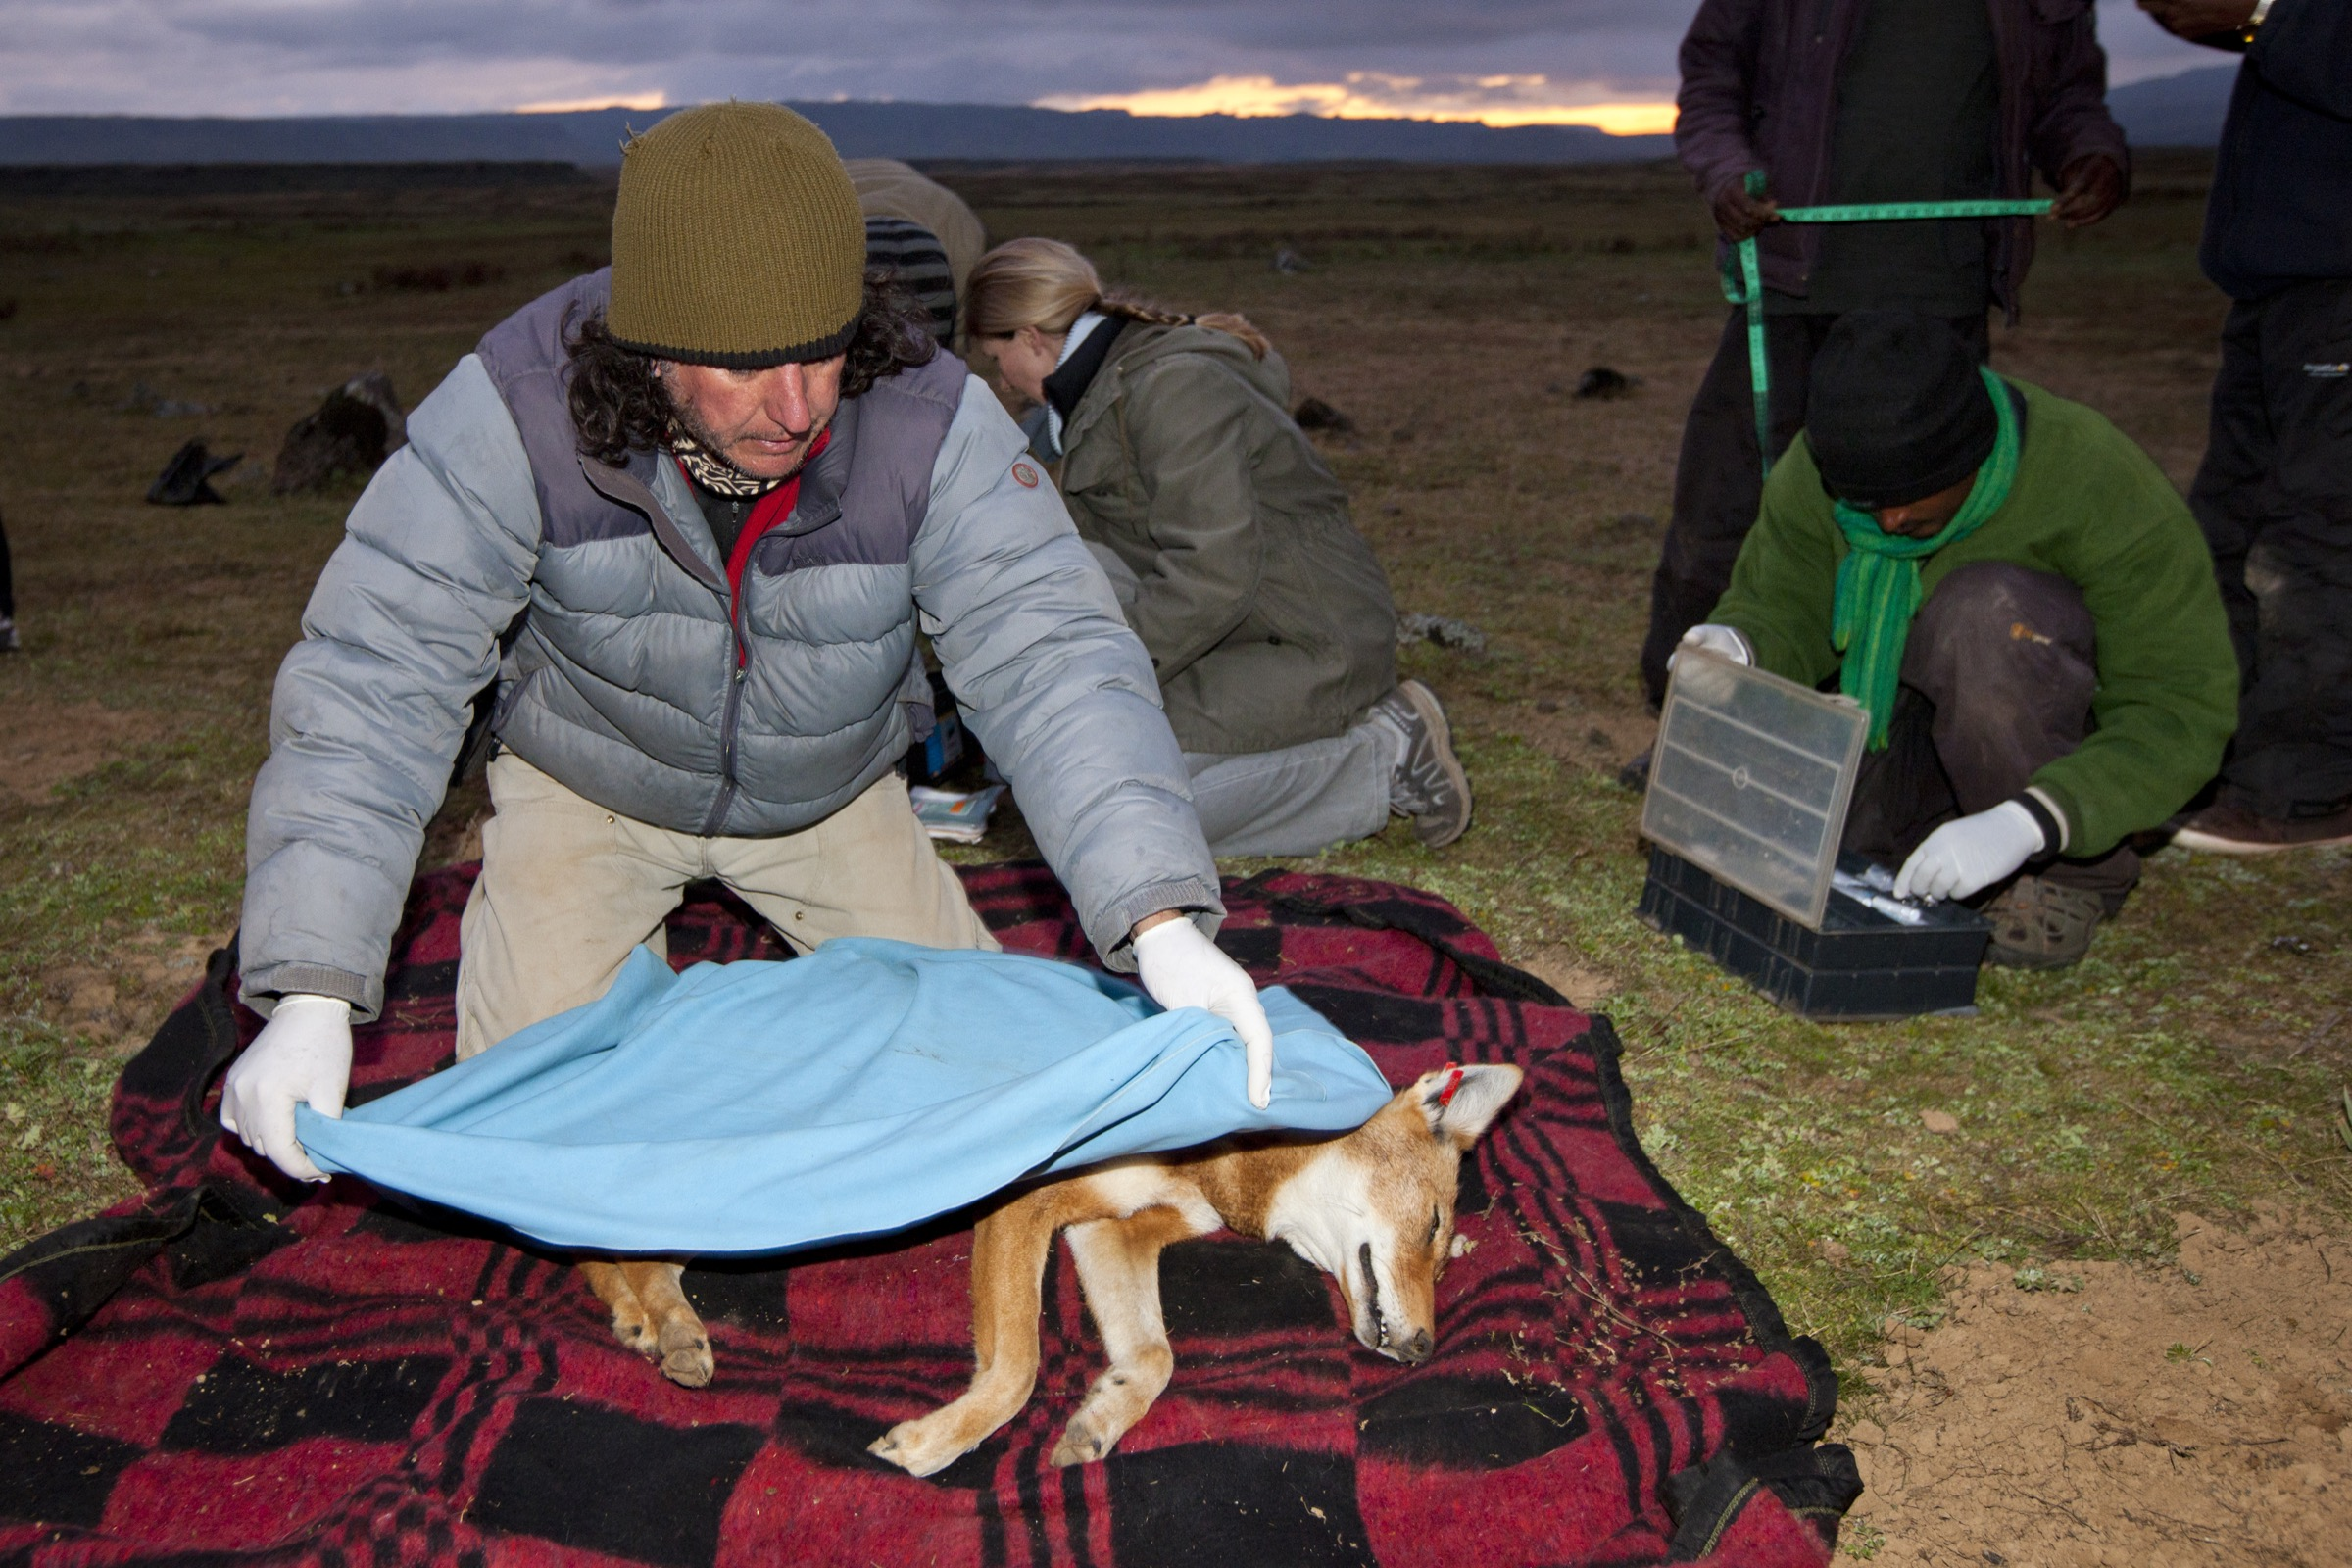 Claudio Sillero, the cofounder of the Ethiopian Wolf Conservation Project, covers a sedated female Ethiopian wolf with a blanket prior to her release.